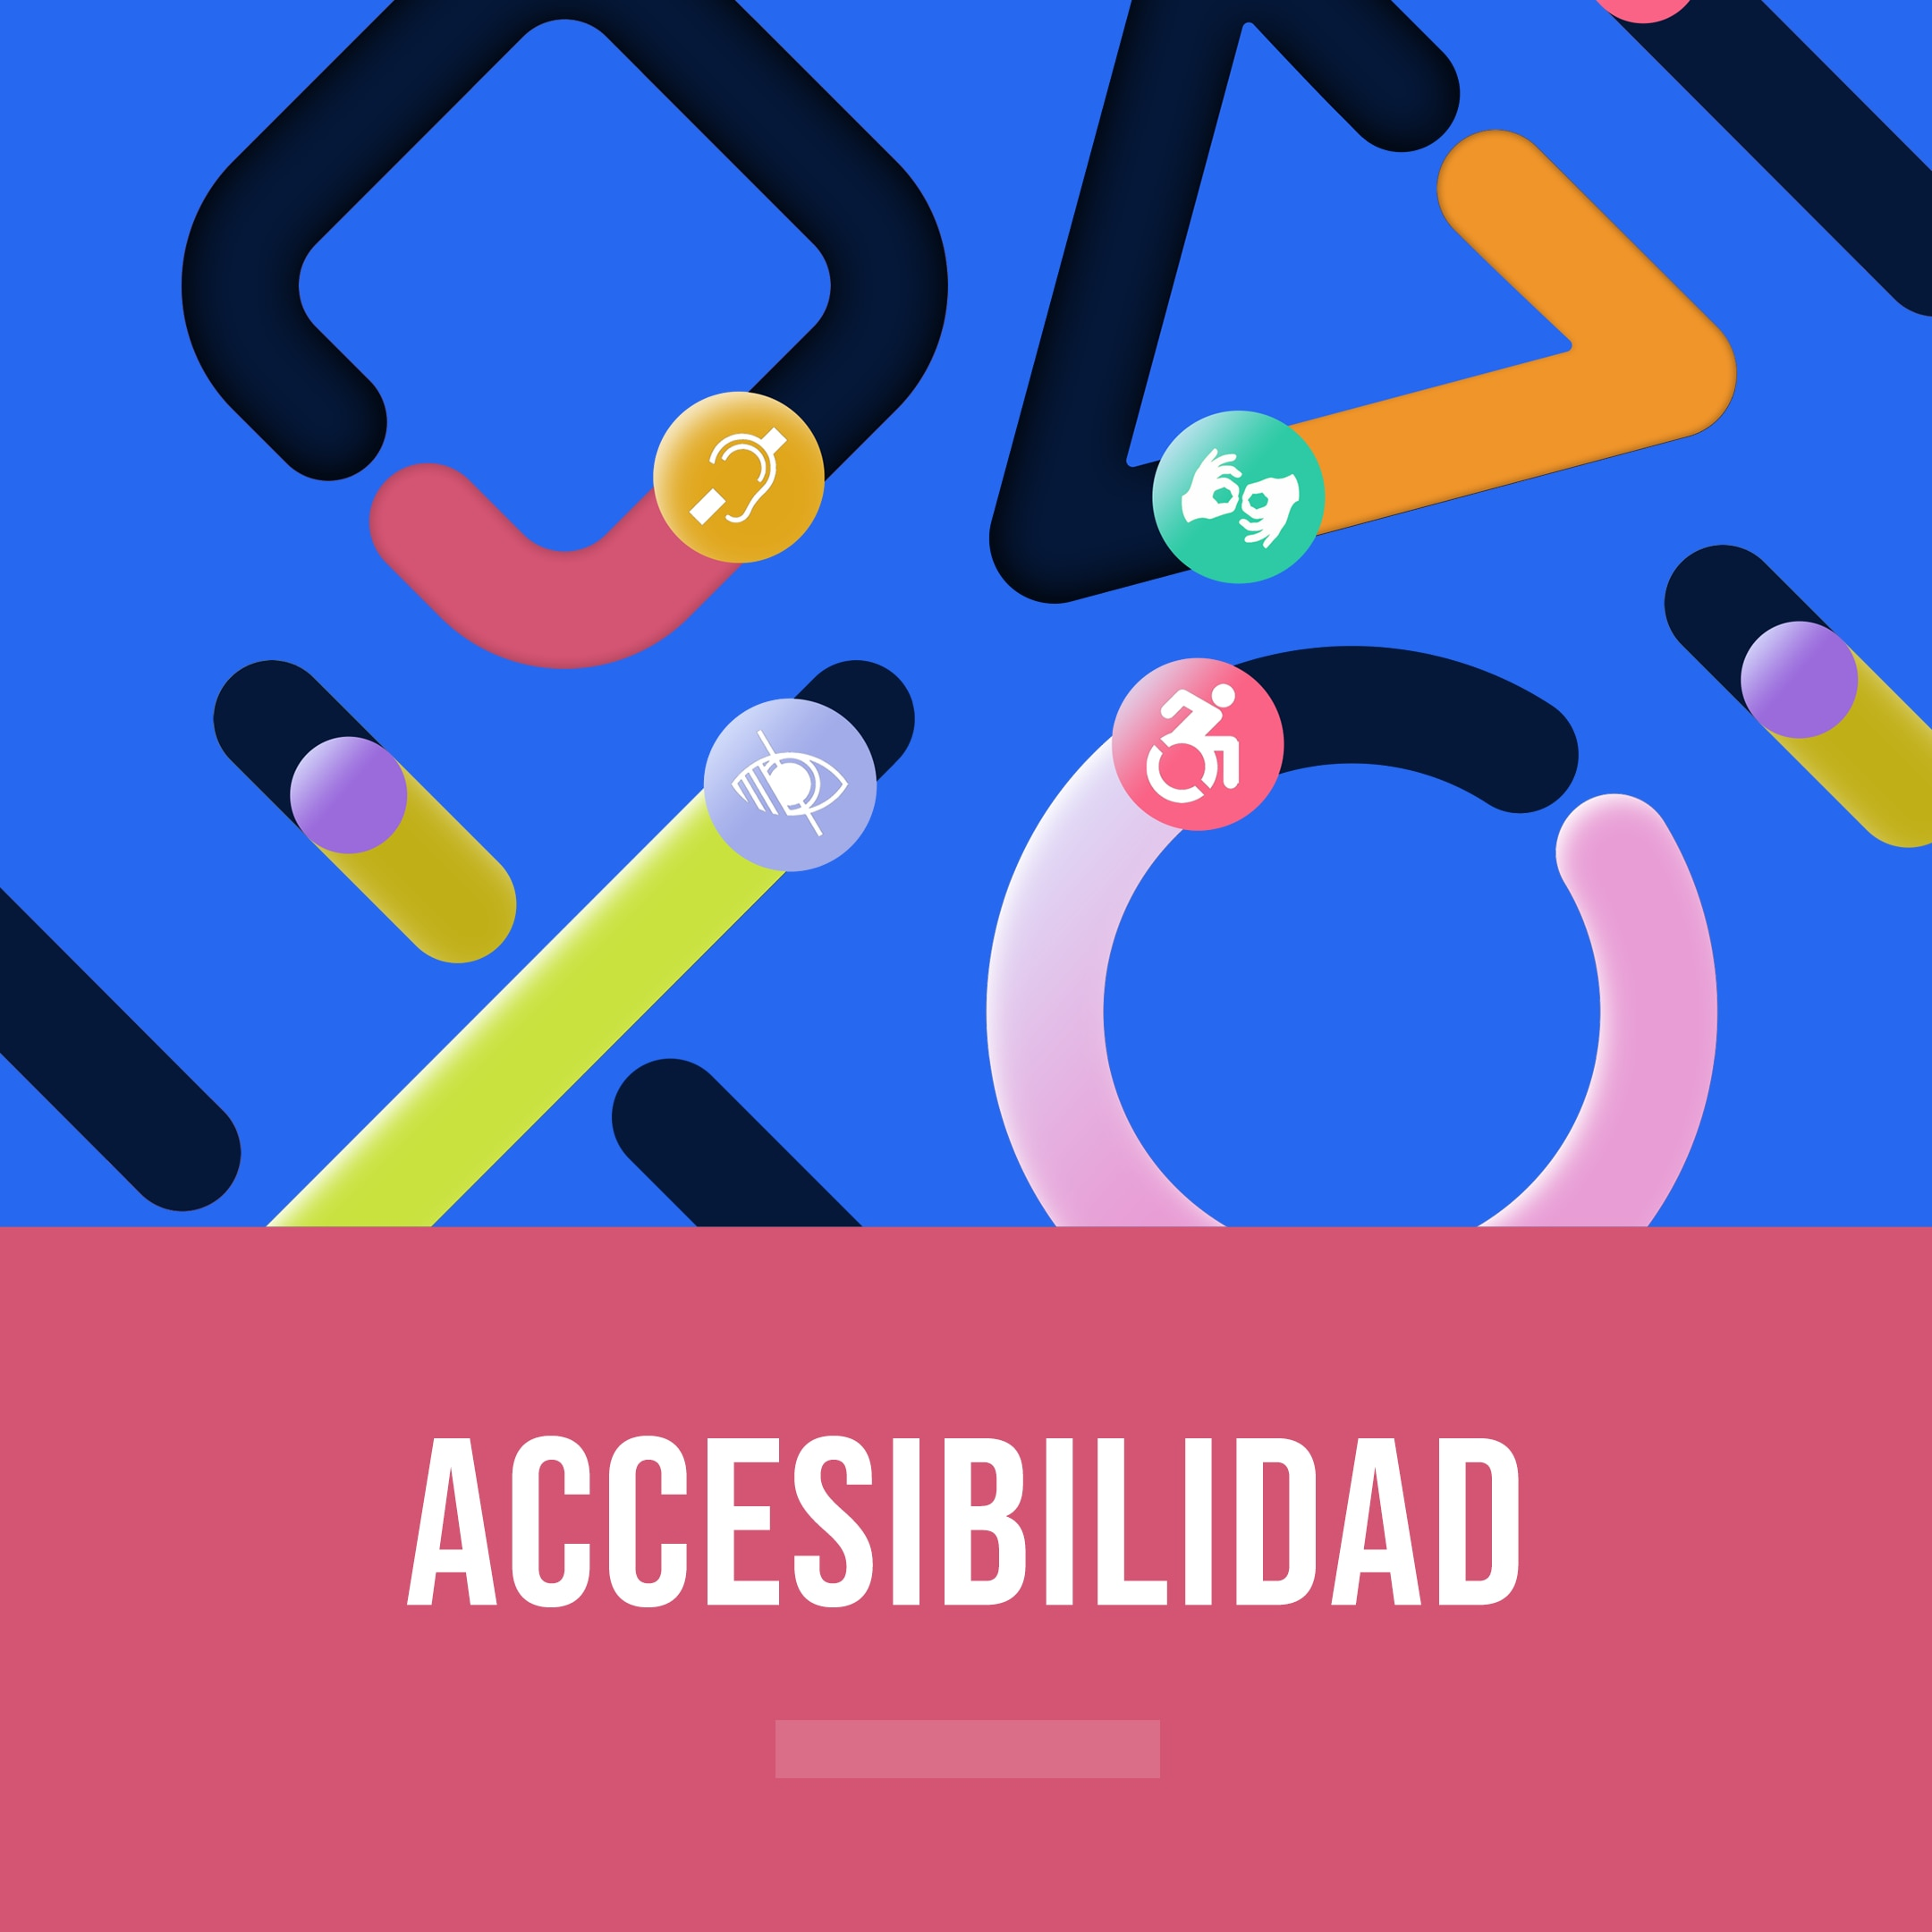 [EDITORIAL] Accessibility Color Tab Oct 21 S26